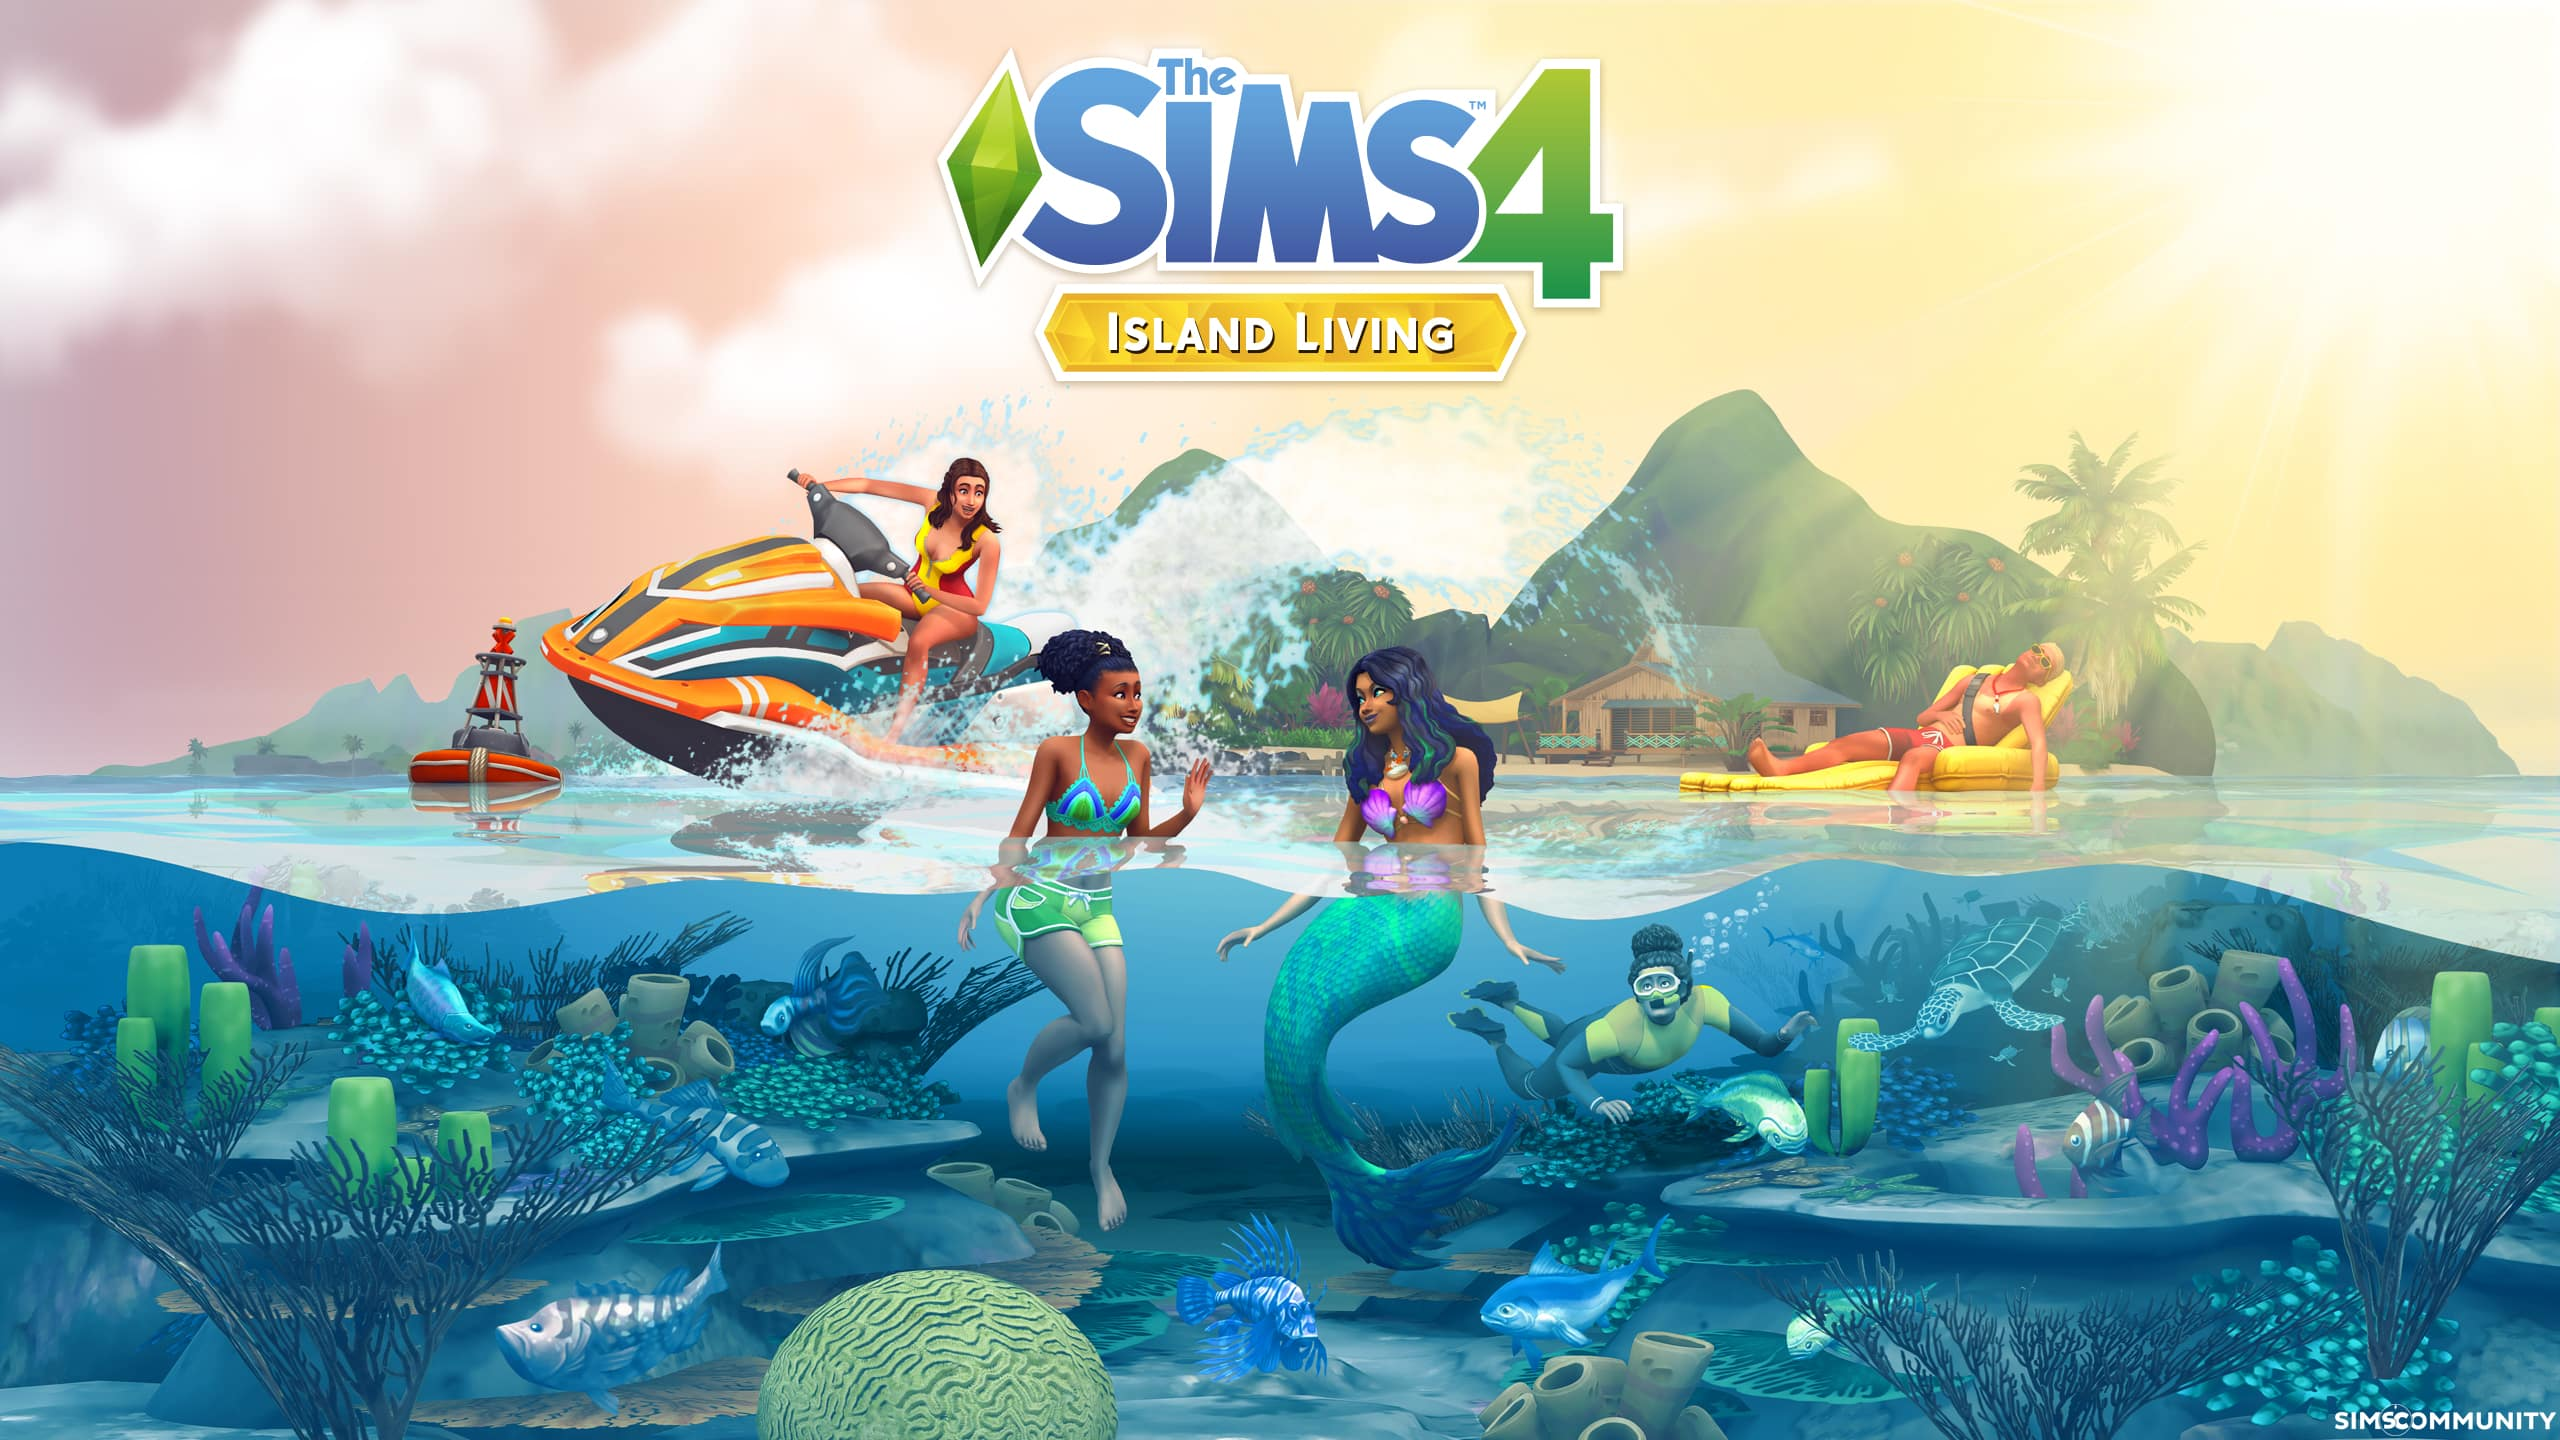 The Sims 4 Island Living Desktop And Smartphone Wallpaper